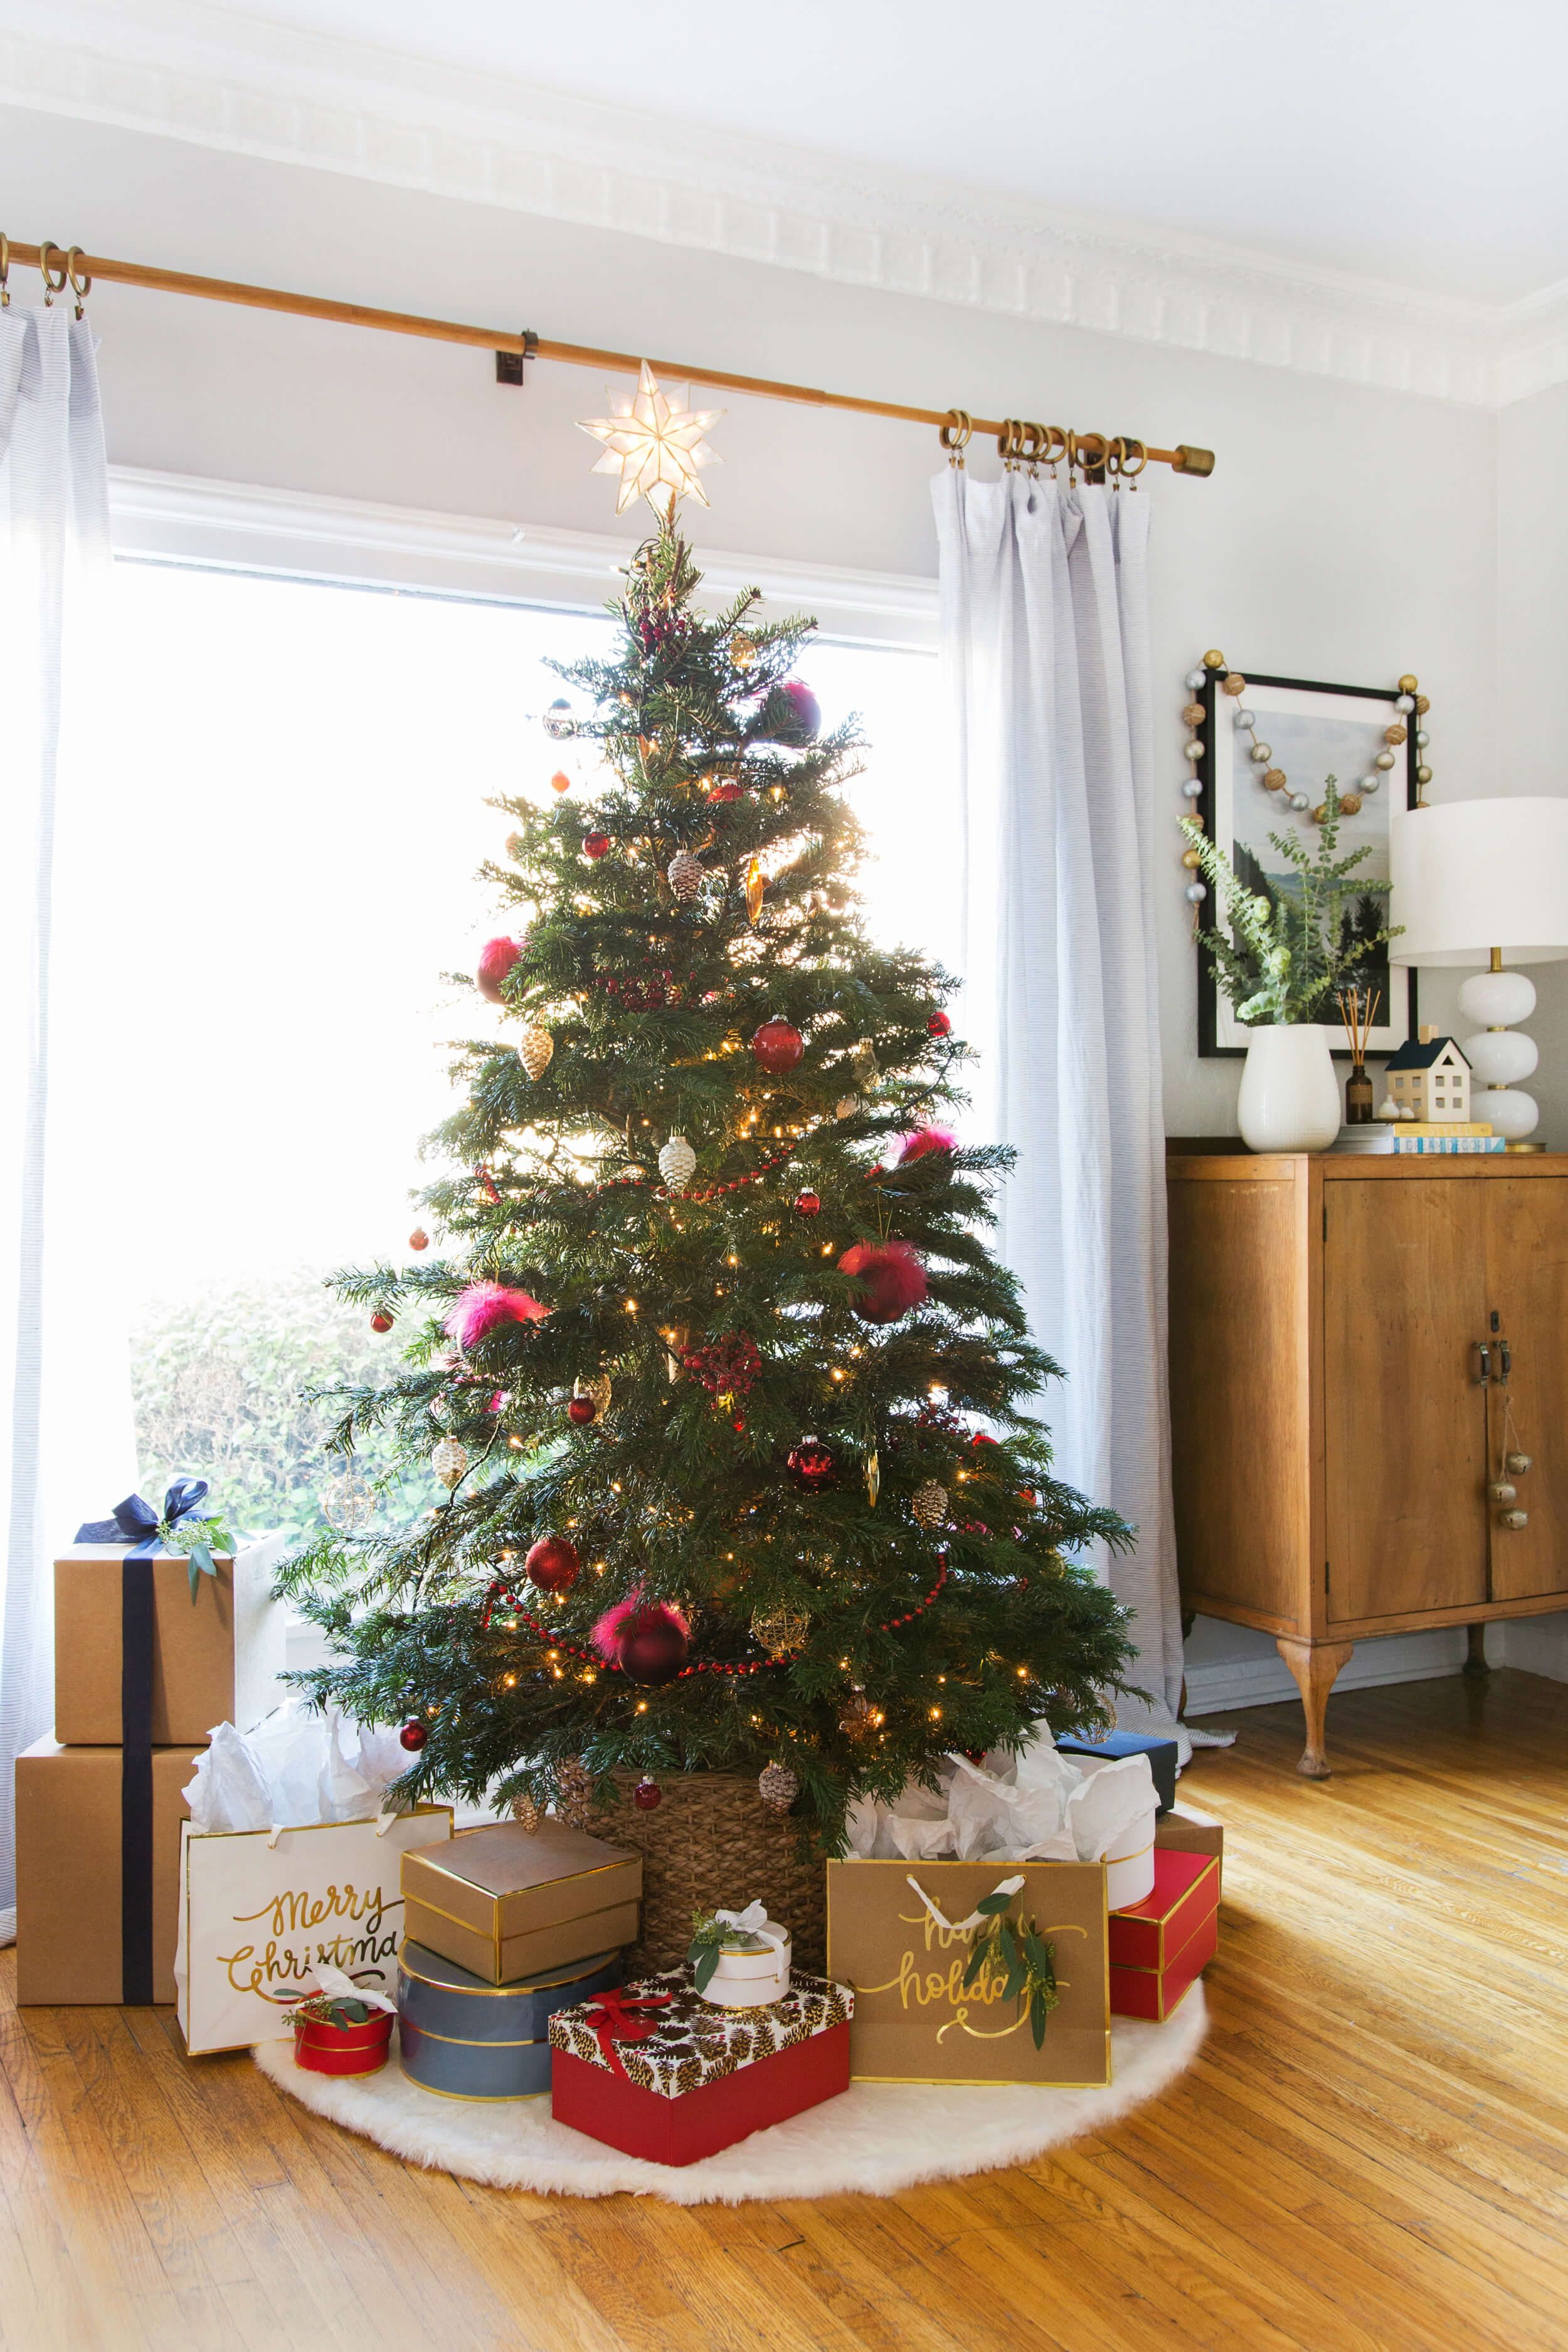 At Home with Ginny for Christmas Christmas Party Ideas